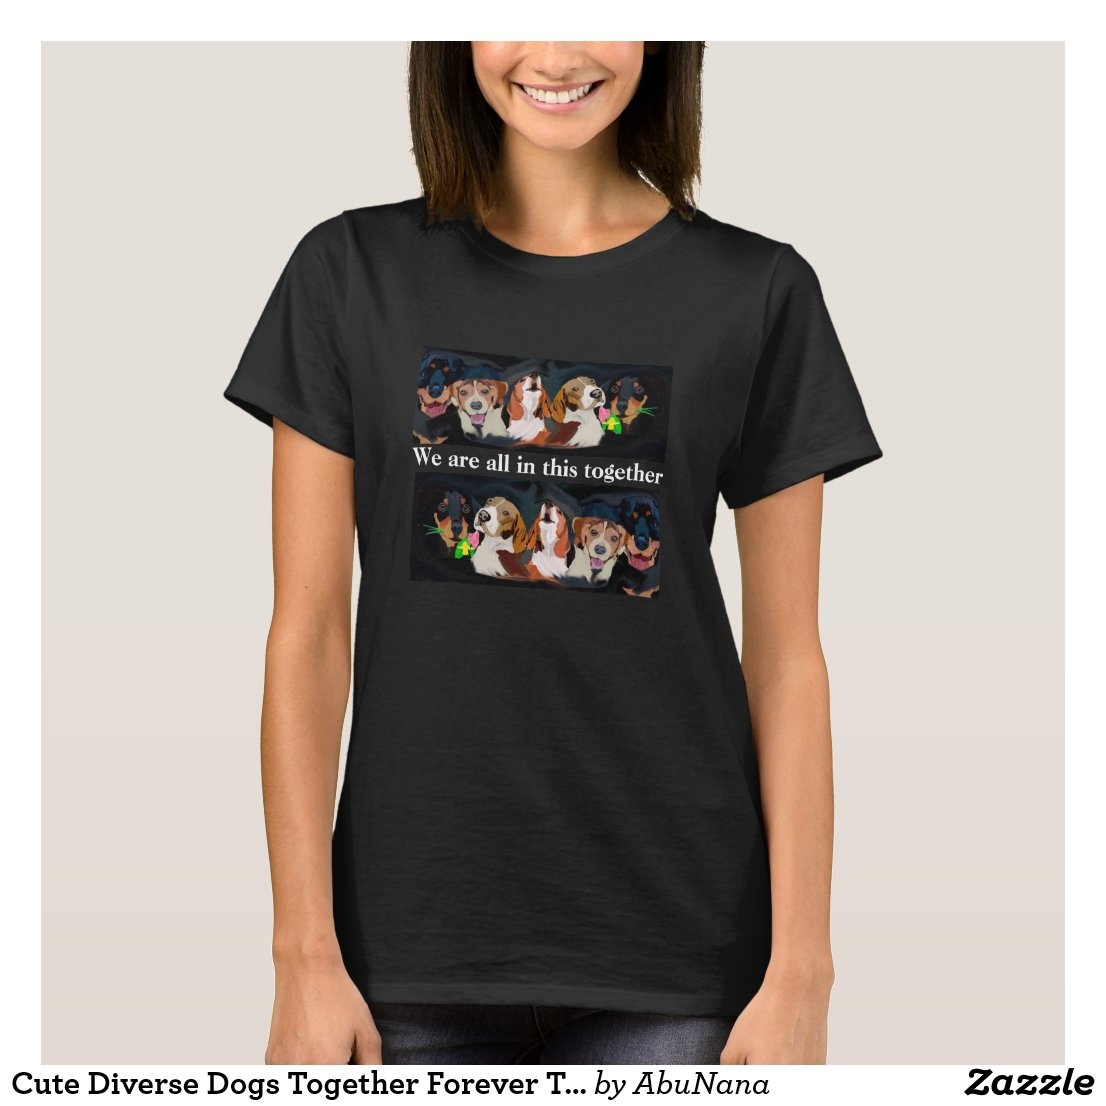 Cute Diverse Dogs Together Forever T-Shirt